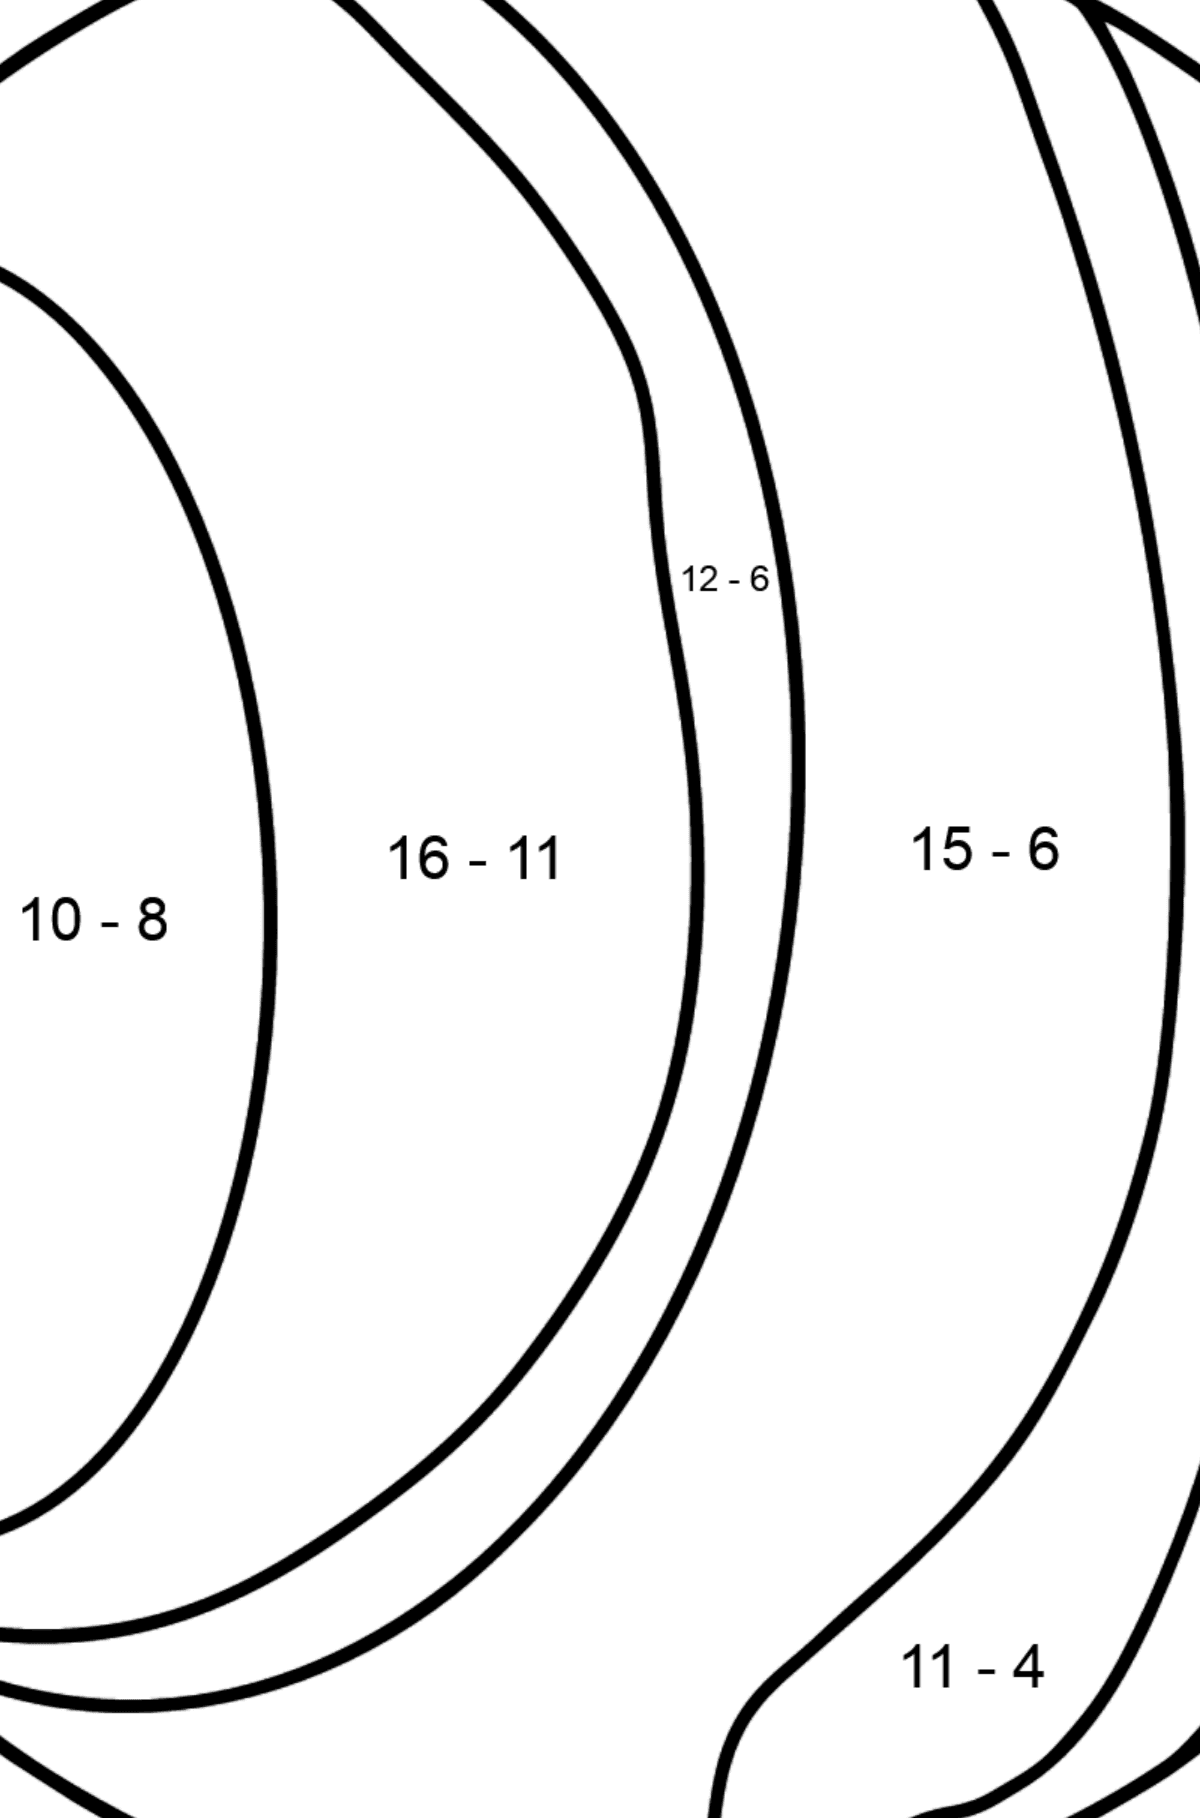 Uranus coloring page - Math Coloring - Subtraction for Kids